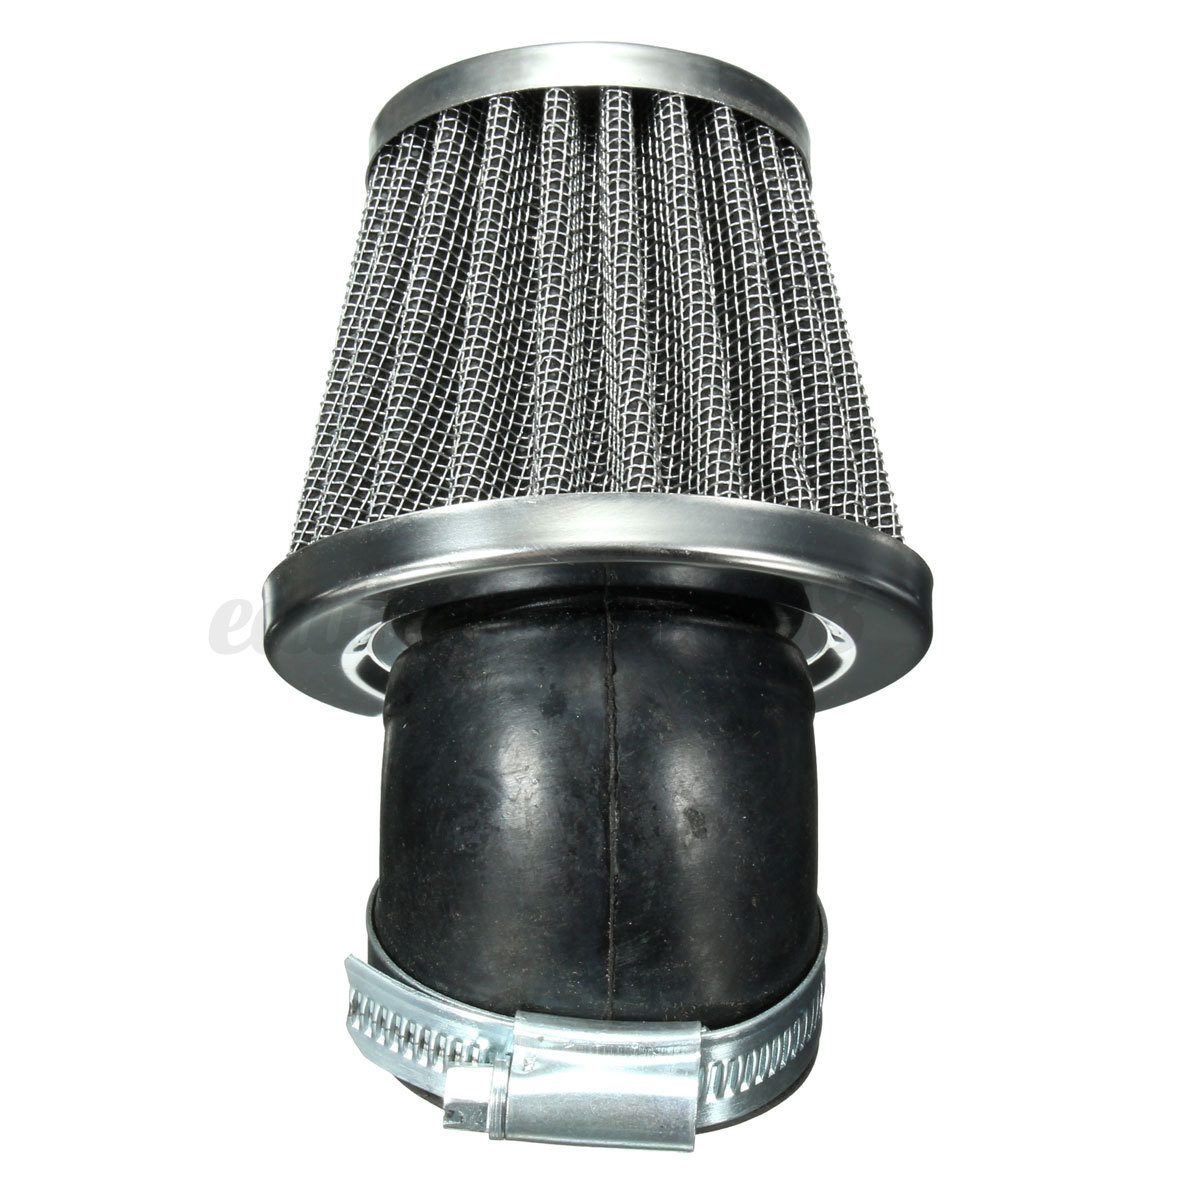 40mm air filter black for 50 110 125 140cc pit dirt bike for Air motors and drives llc